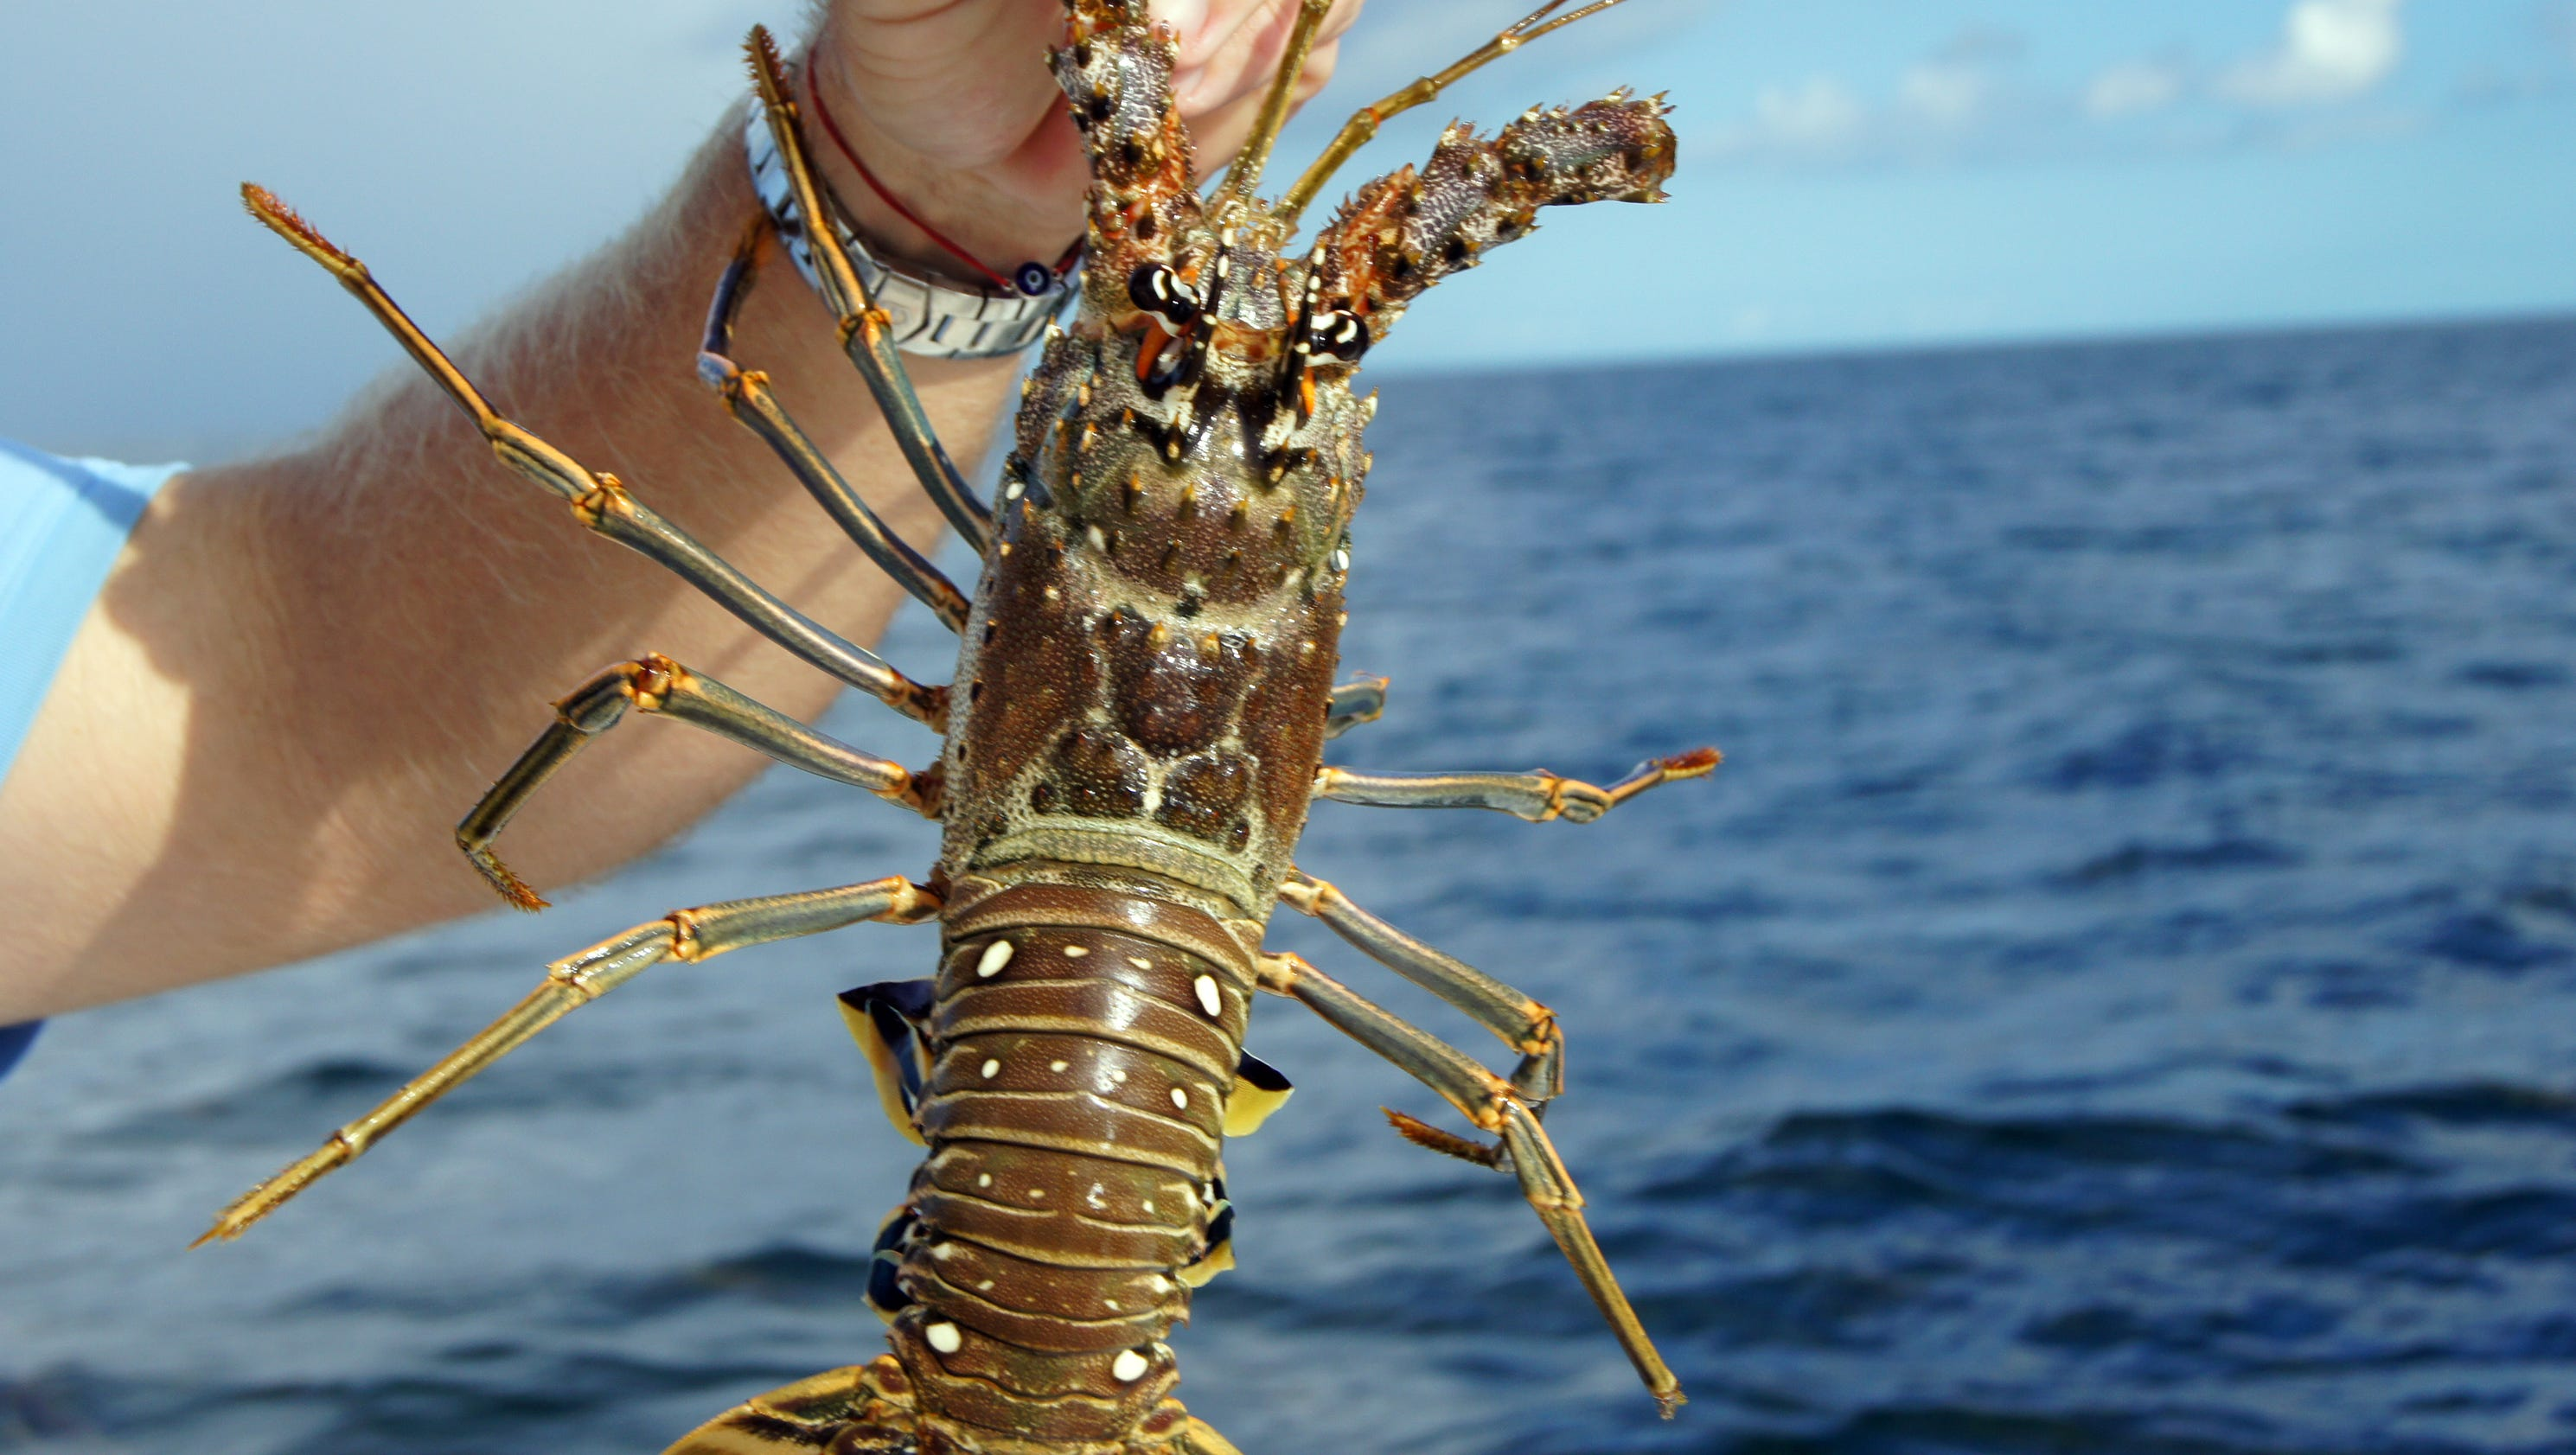 Grilled Florida lobster with brandy sauce recipe